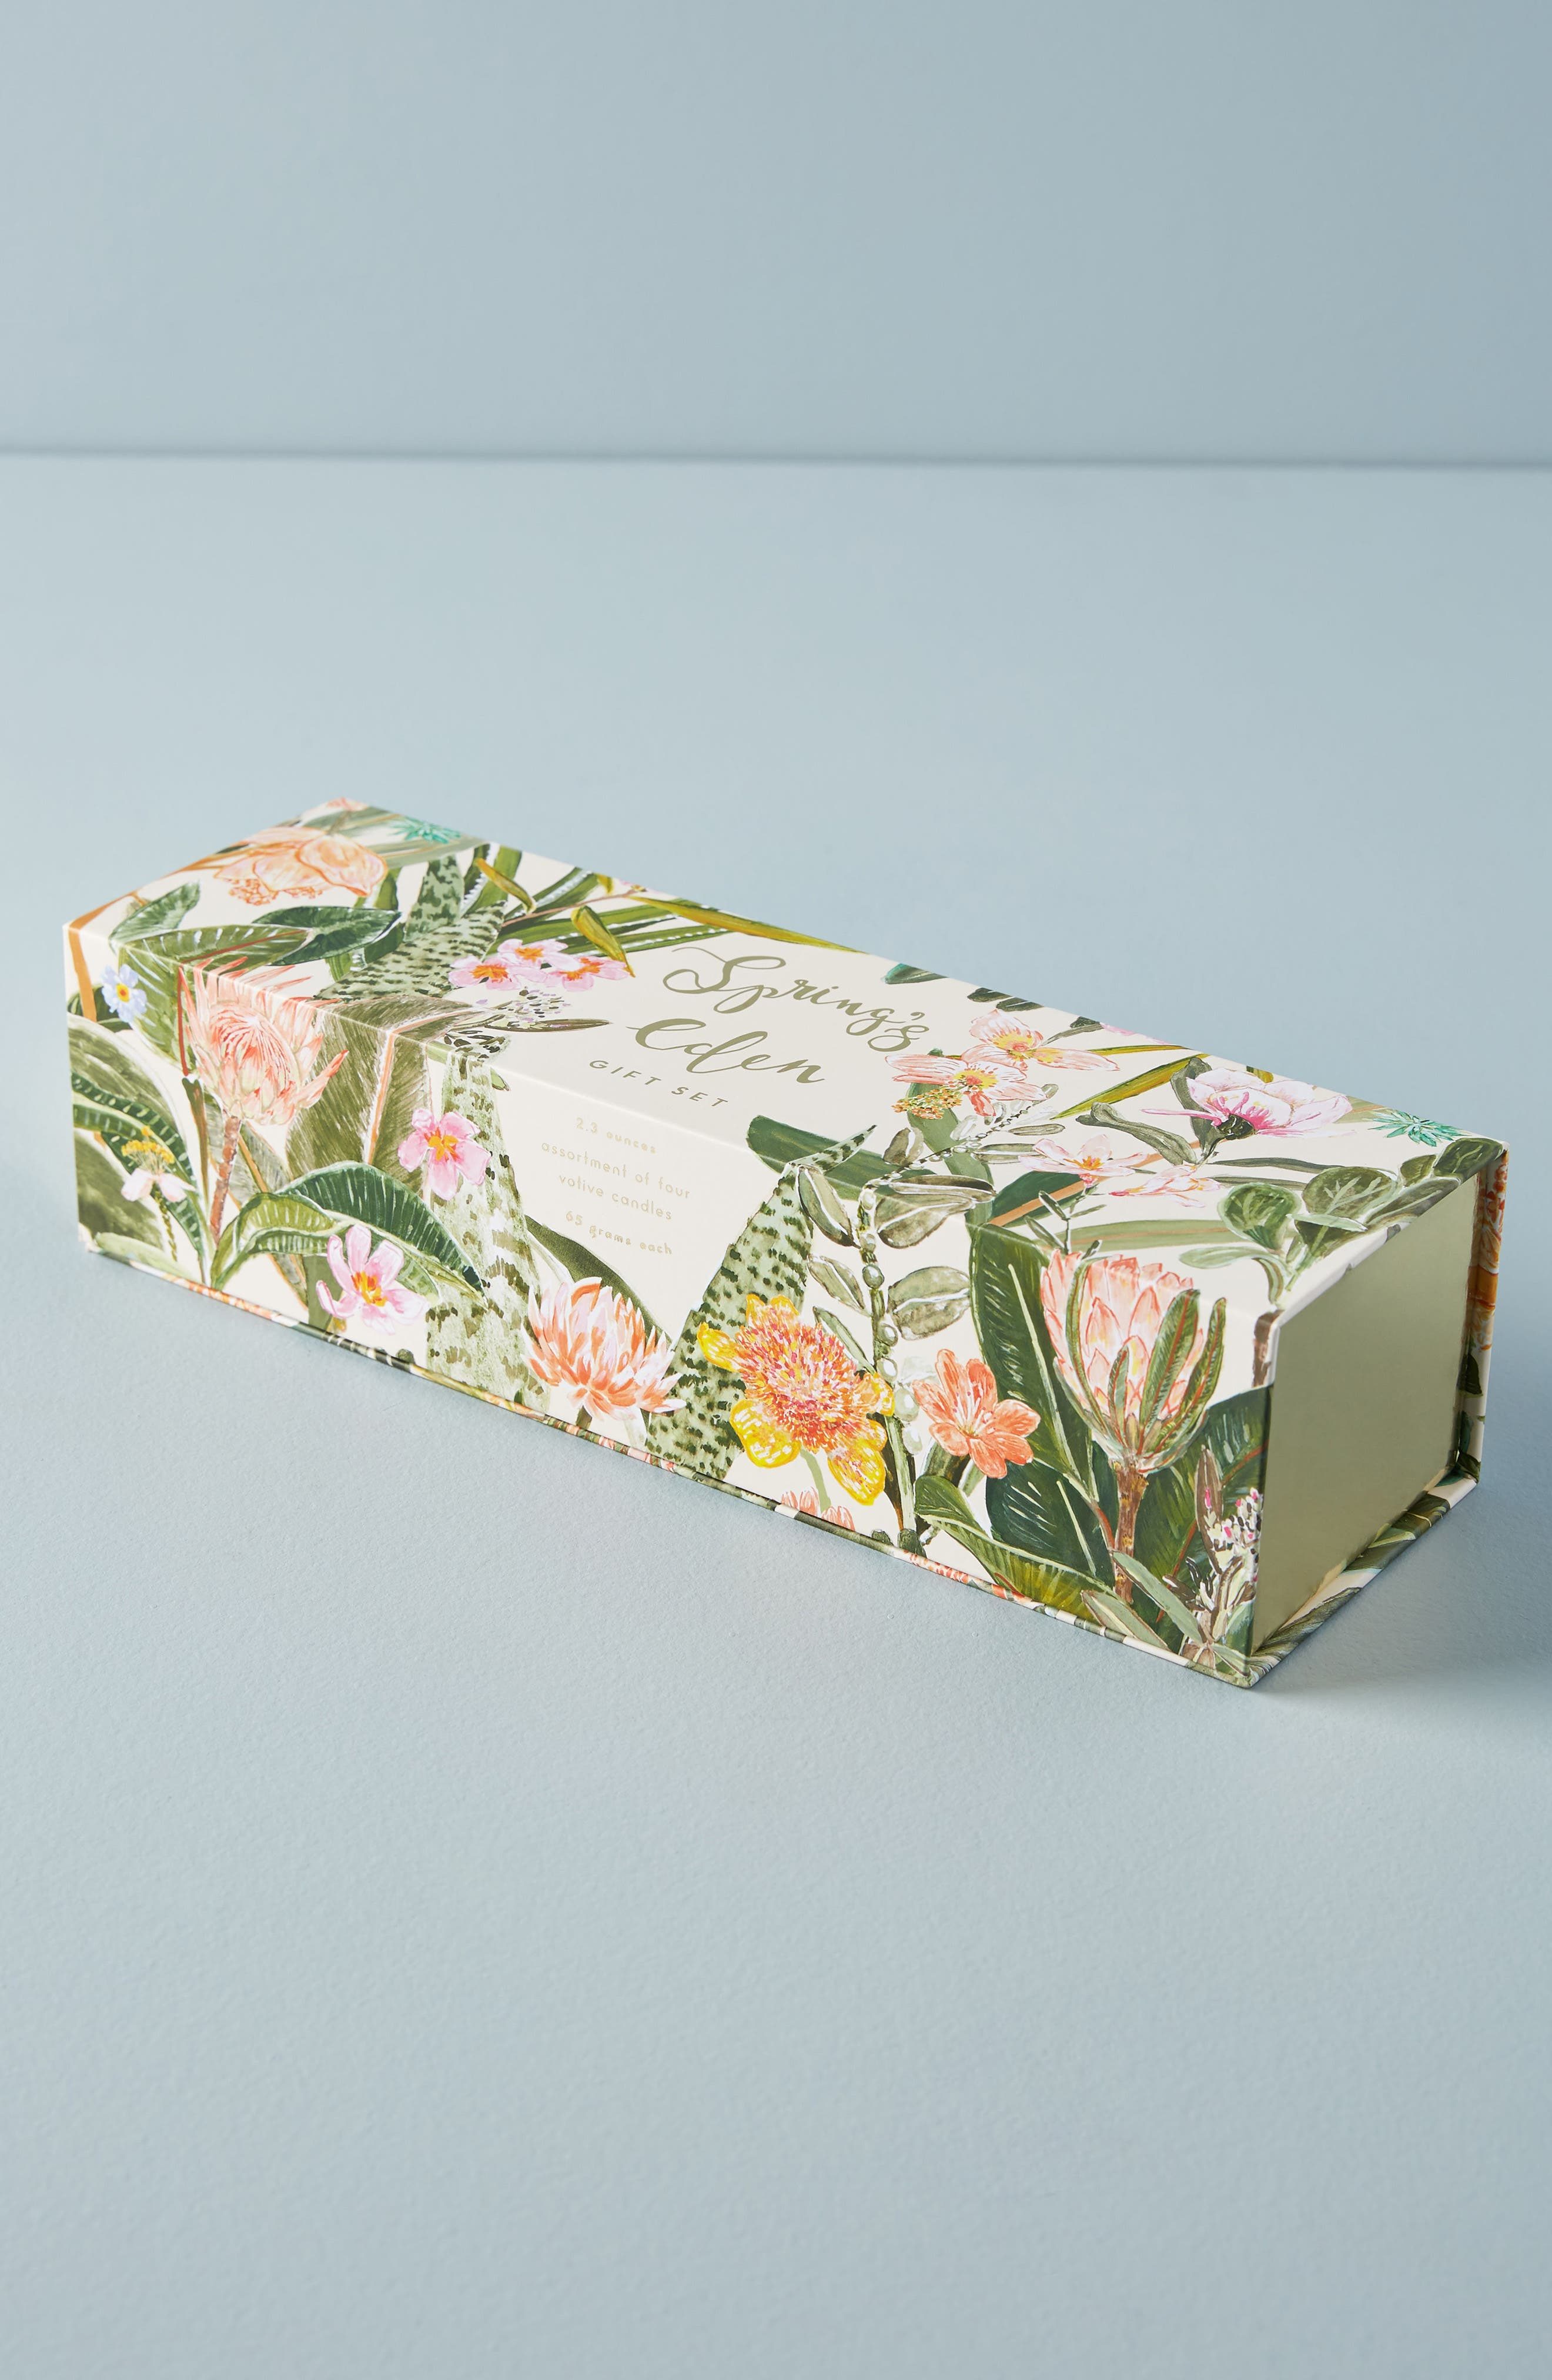 Anthropologie Spring's Eden Candle Gift Set